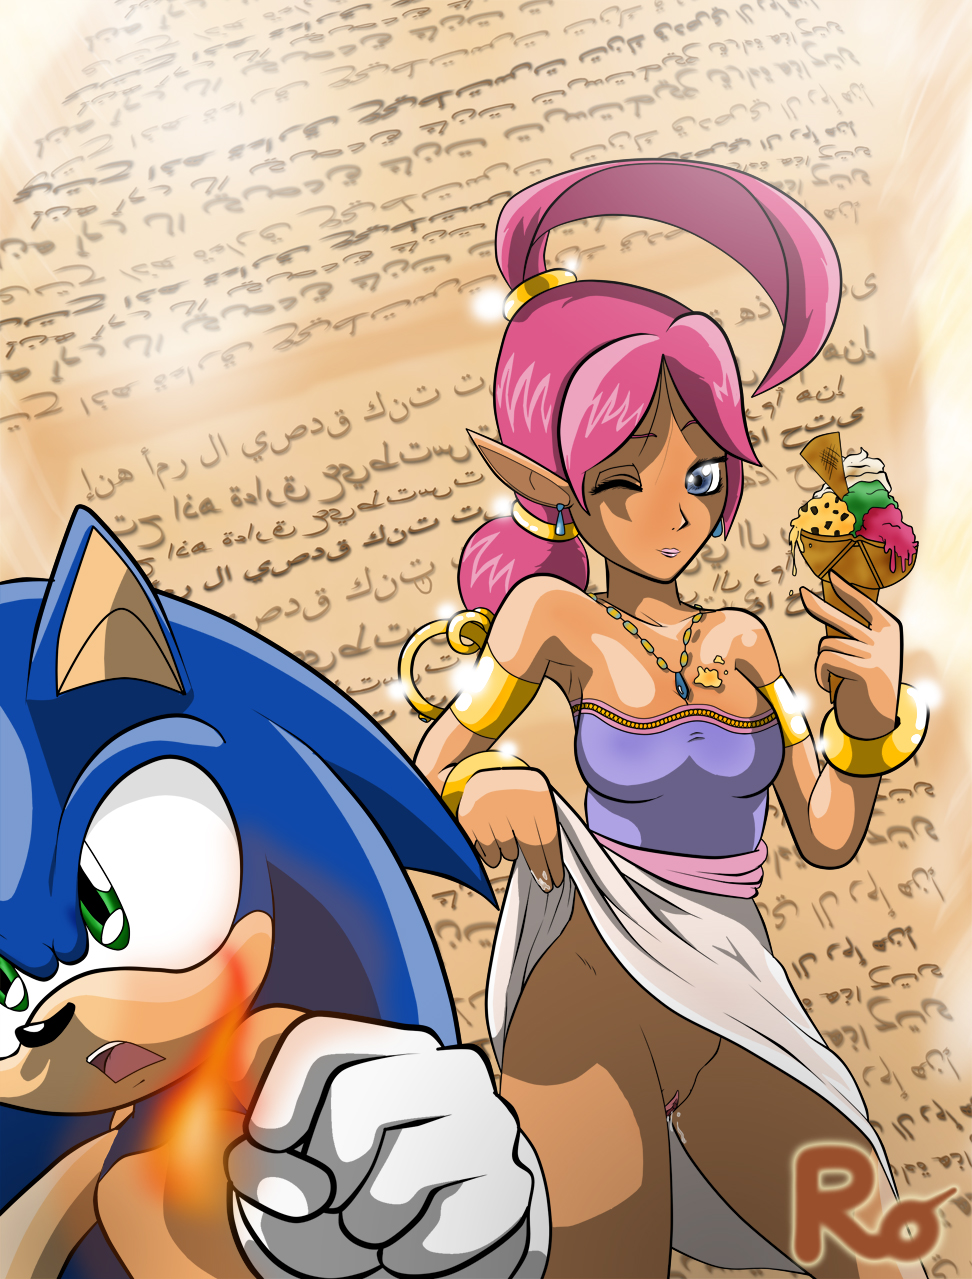 amy sonic bed and in Joan of arc fate grand order